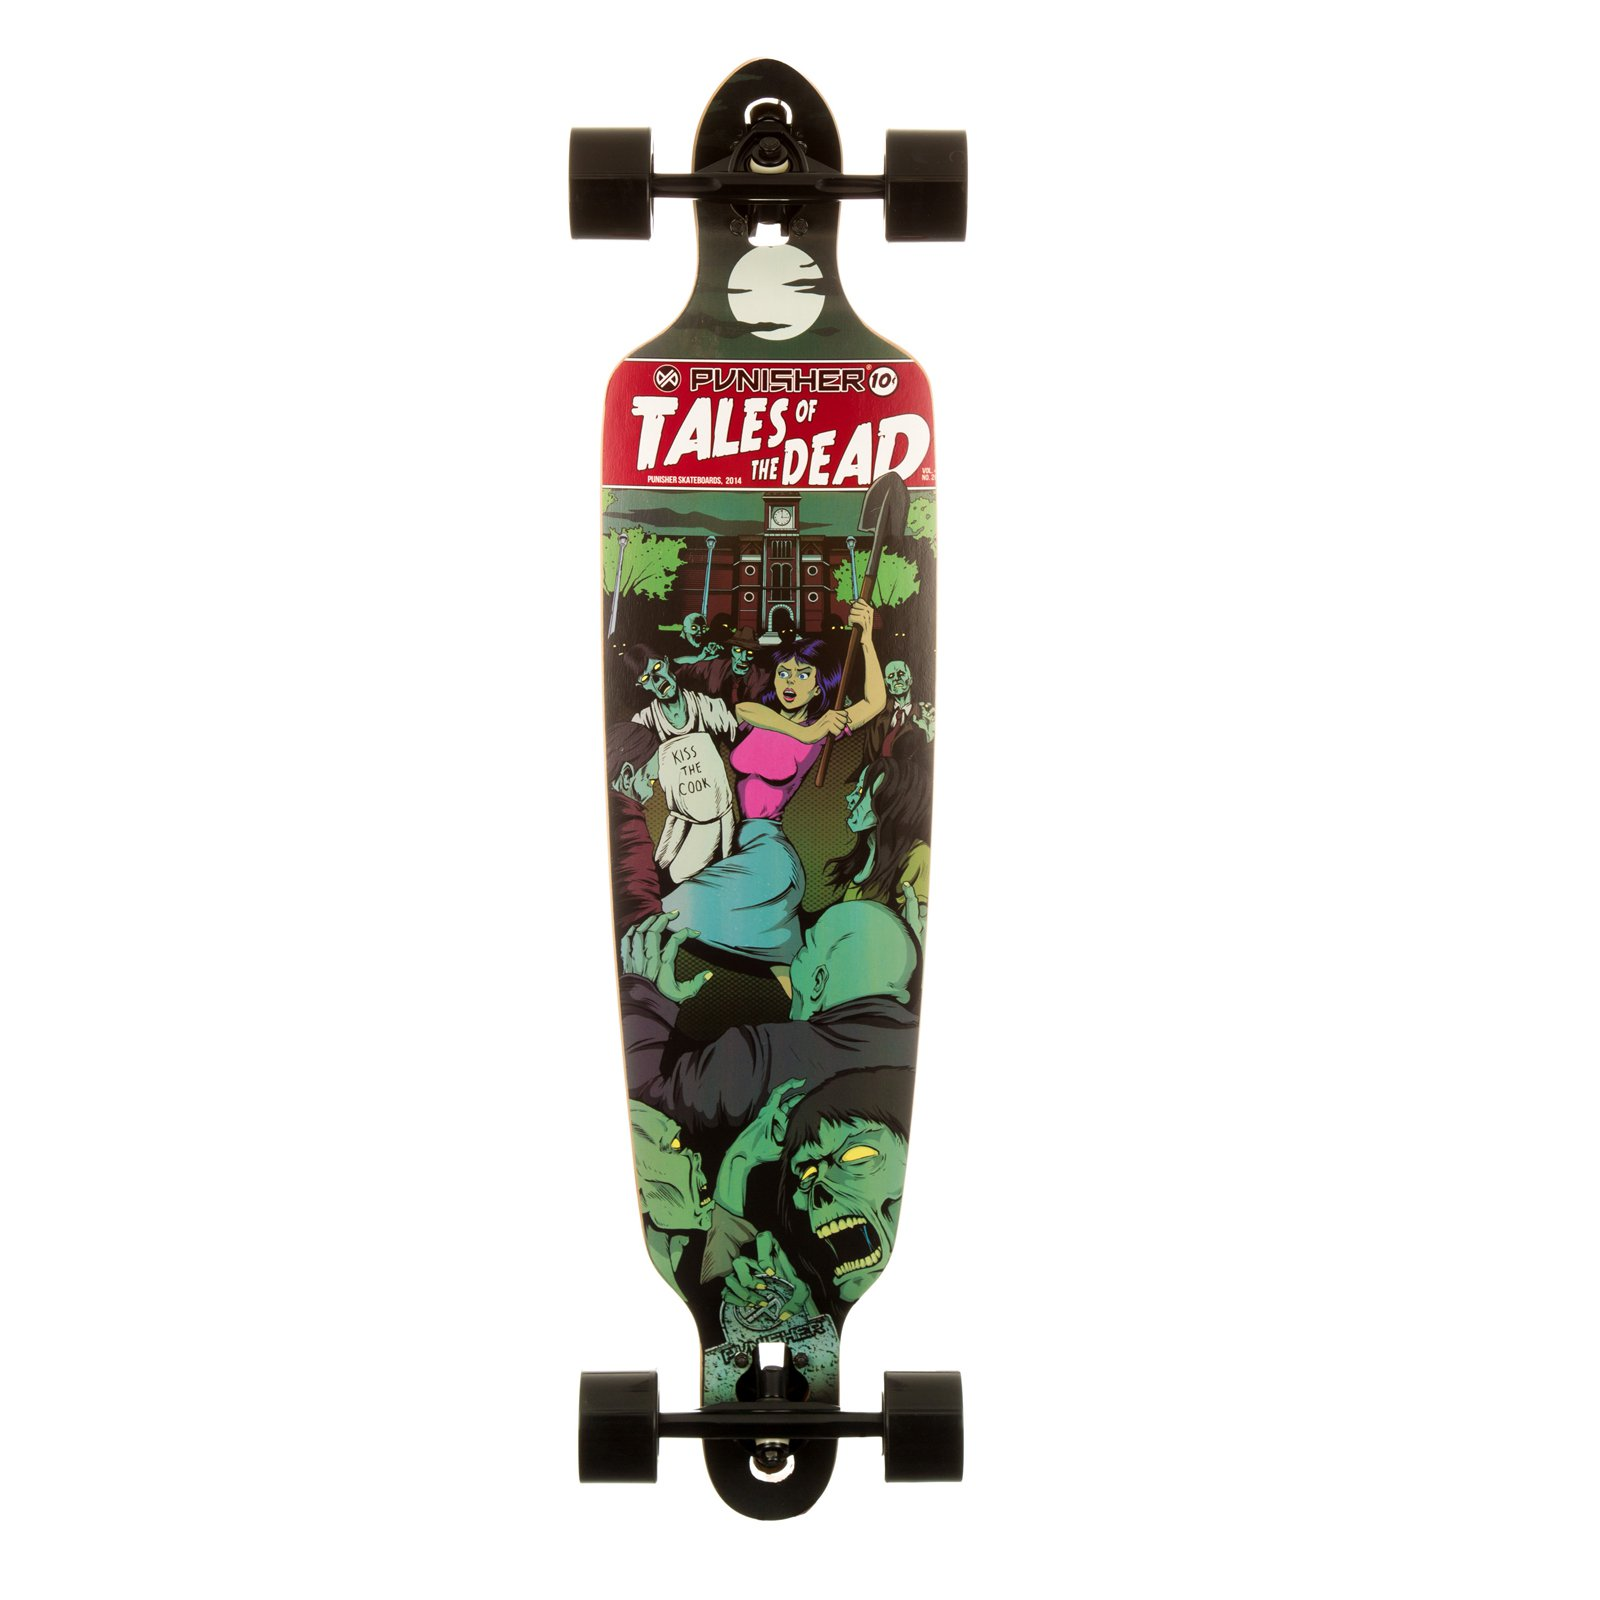 "Punisher Skateboards Tales of the Dead 40"" Longboard, Double Kick with Drop Down Deck by Generic"